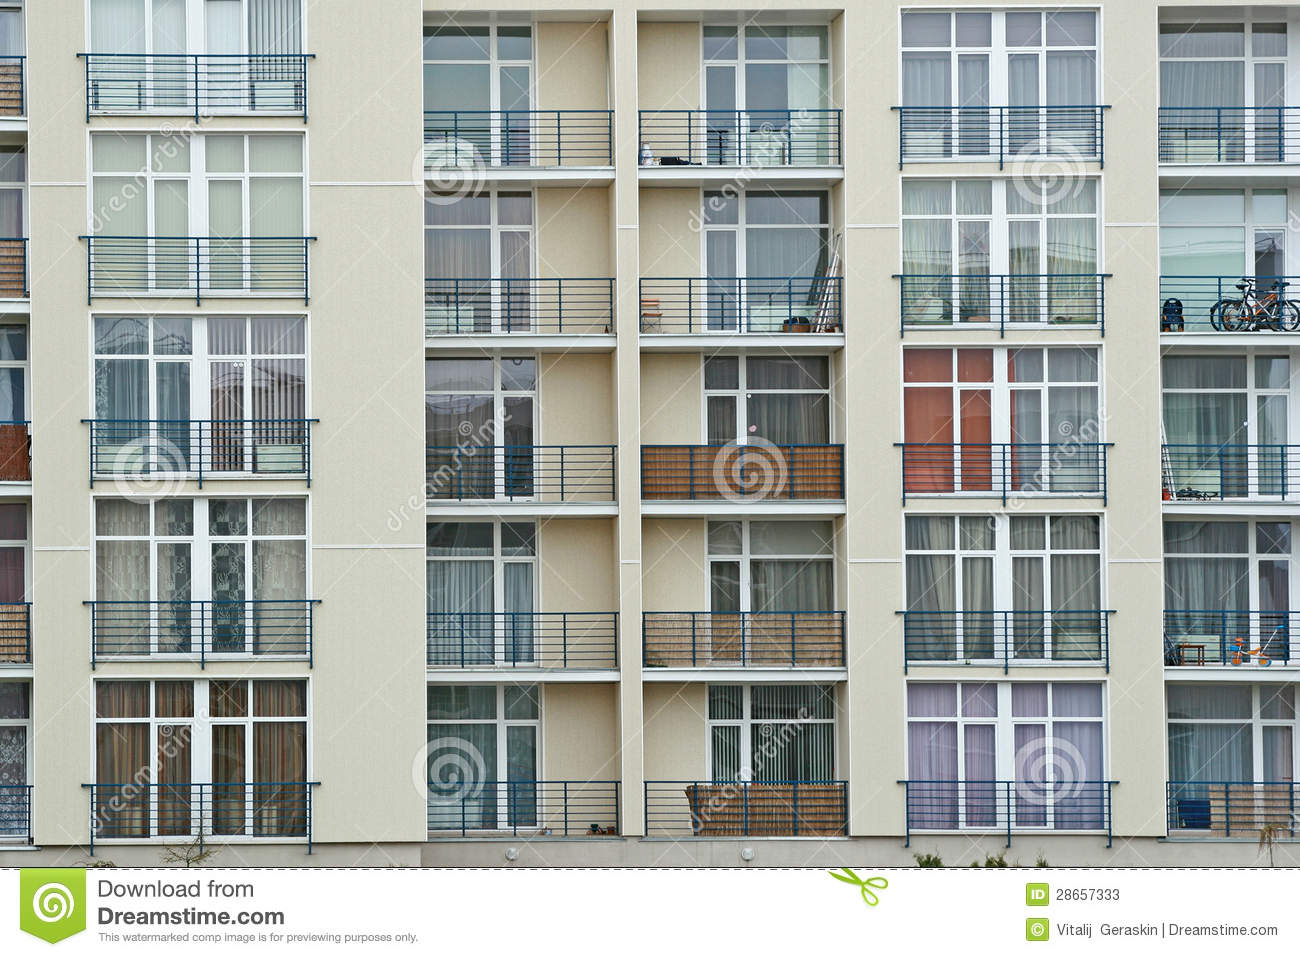 Stainless Steel Sheds : Stainless steel balcony on the modern building stock image